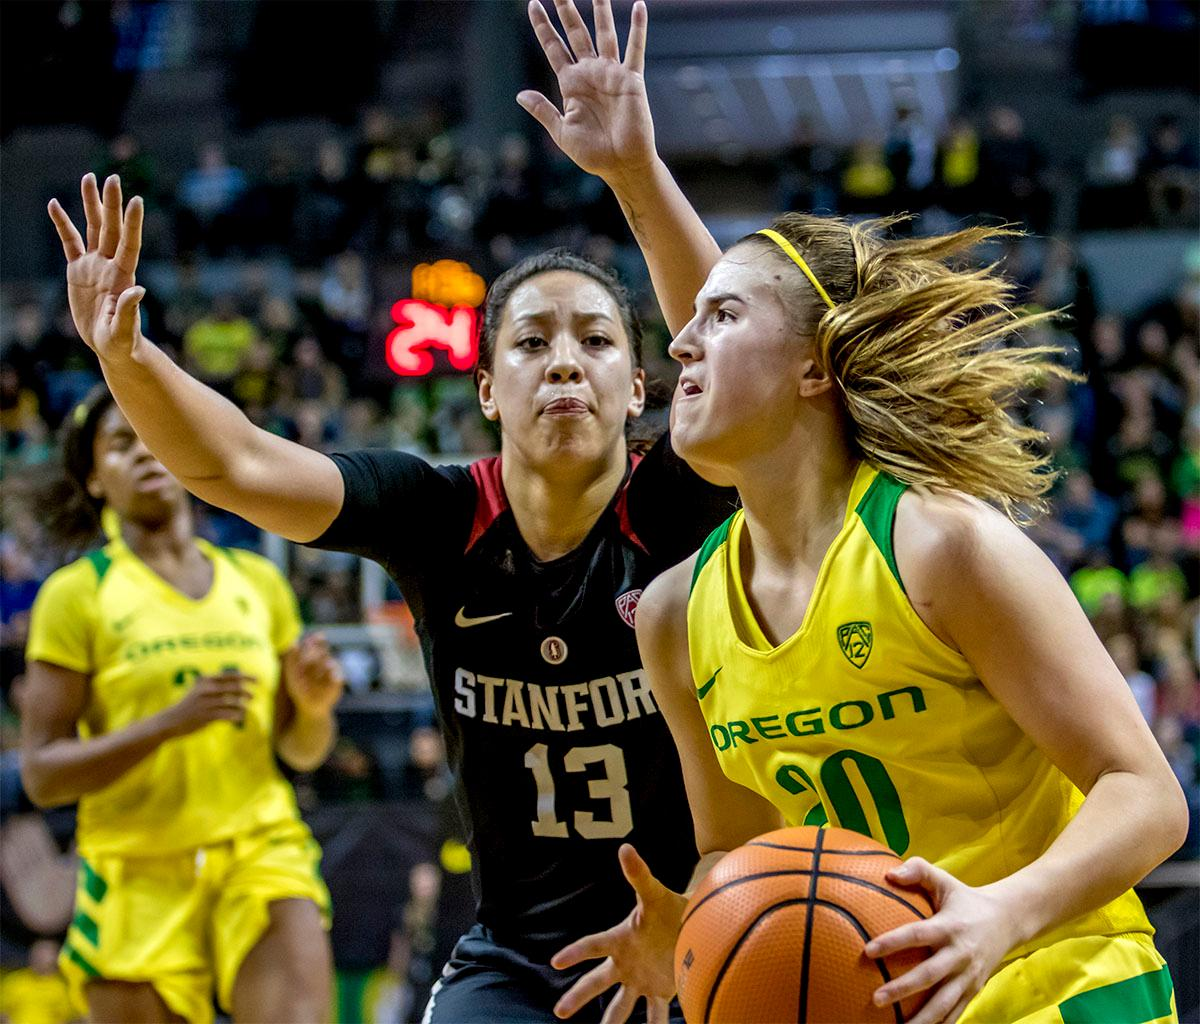 The Duck's Sabrina Ionescu (#20) looks for a path to the basket. The Stanford Cardinal defeated the Oregon Ducks 78-65 on Sunday afternoon at Matthew Knight Arena. Stanford is now 10-2 in conference play and with this loss the Ducks drop to 10-2. Leading the Stanford Cardinal was Brittany McPhee with 33 points, Alanna Smith with 14 points, and Kiana Williams with 14 points. For the Ducks Sabrina Ionescu led with 22 points, Ruthy Hebard added 16 points, and Satou Sabally put in 14 points. Photo by August Frank, Oregon News Lab